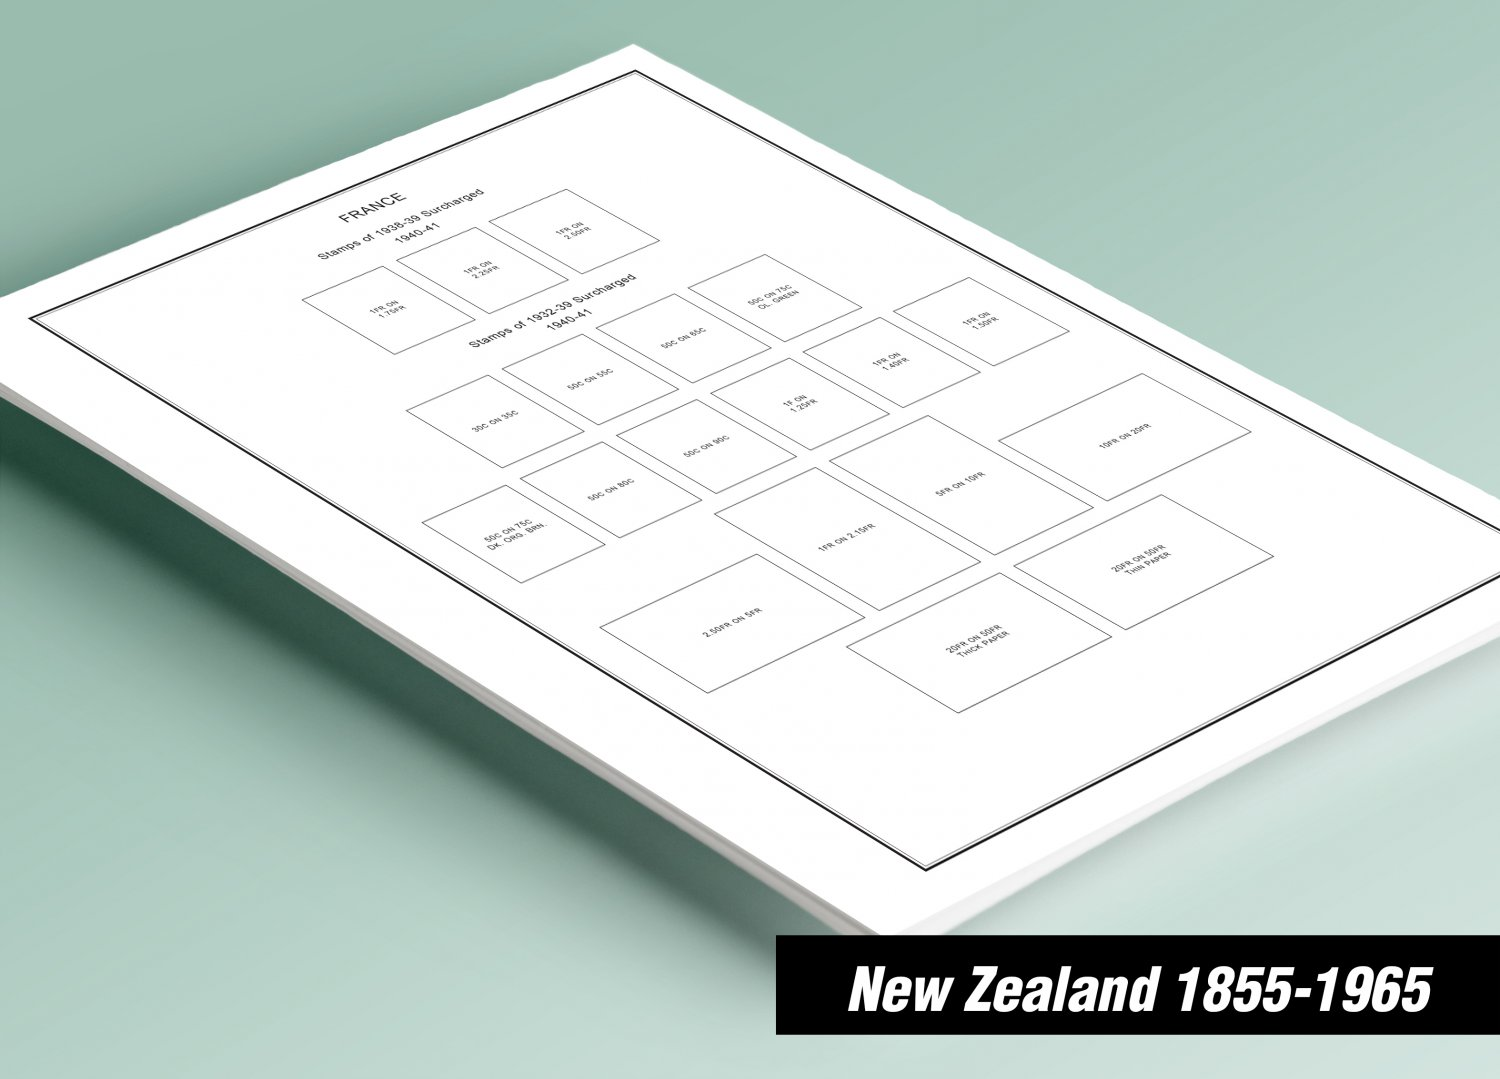 PRINTED NEW ZEALAND [CLASS.] 1855-1965 STAMP ALBUM PAGES (55 pages)